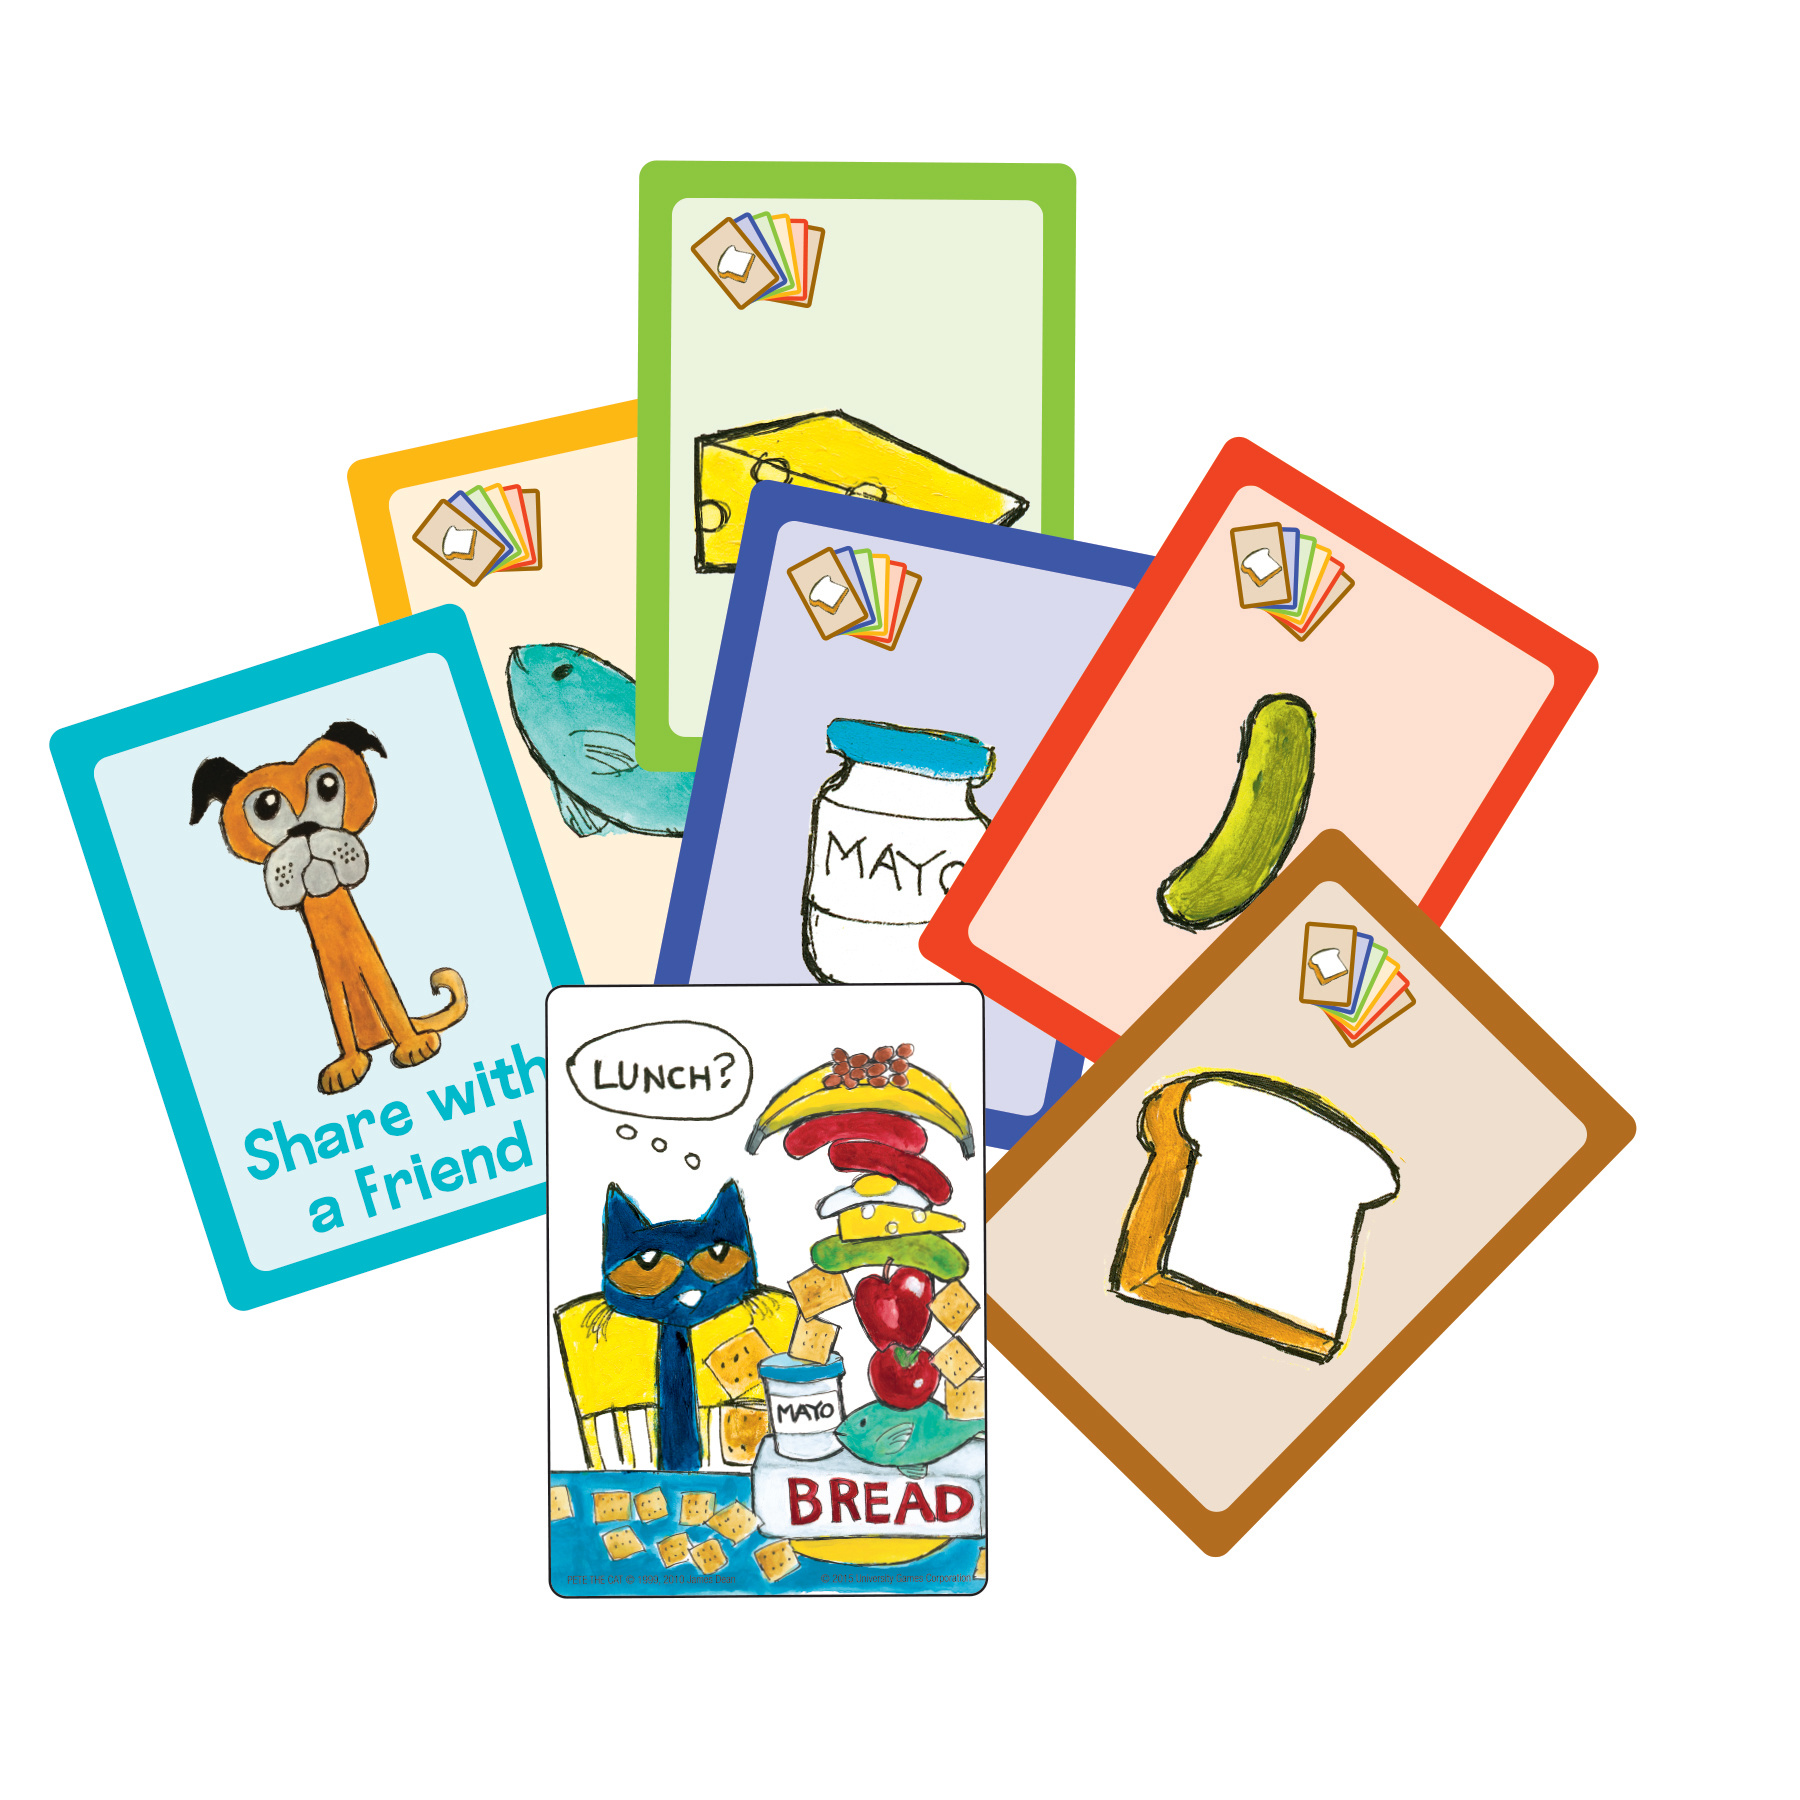 pete the cat big lunch card game instructions